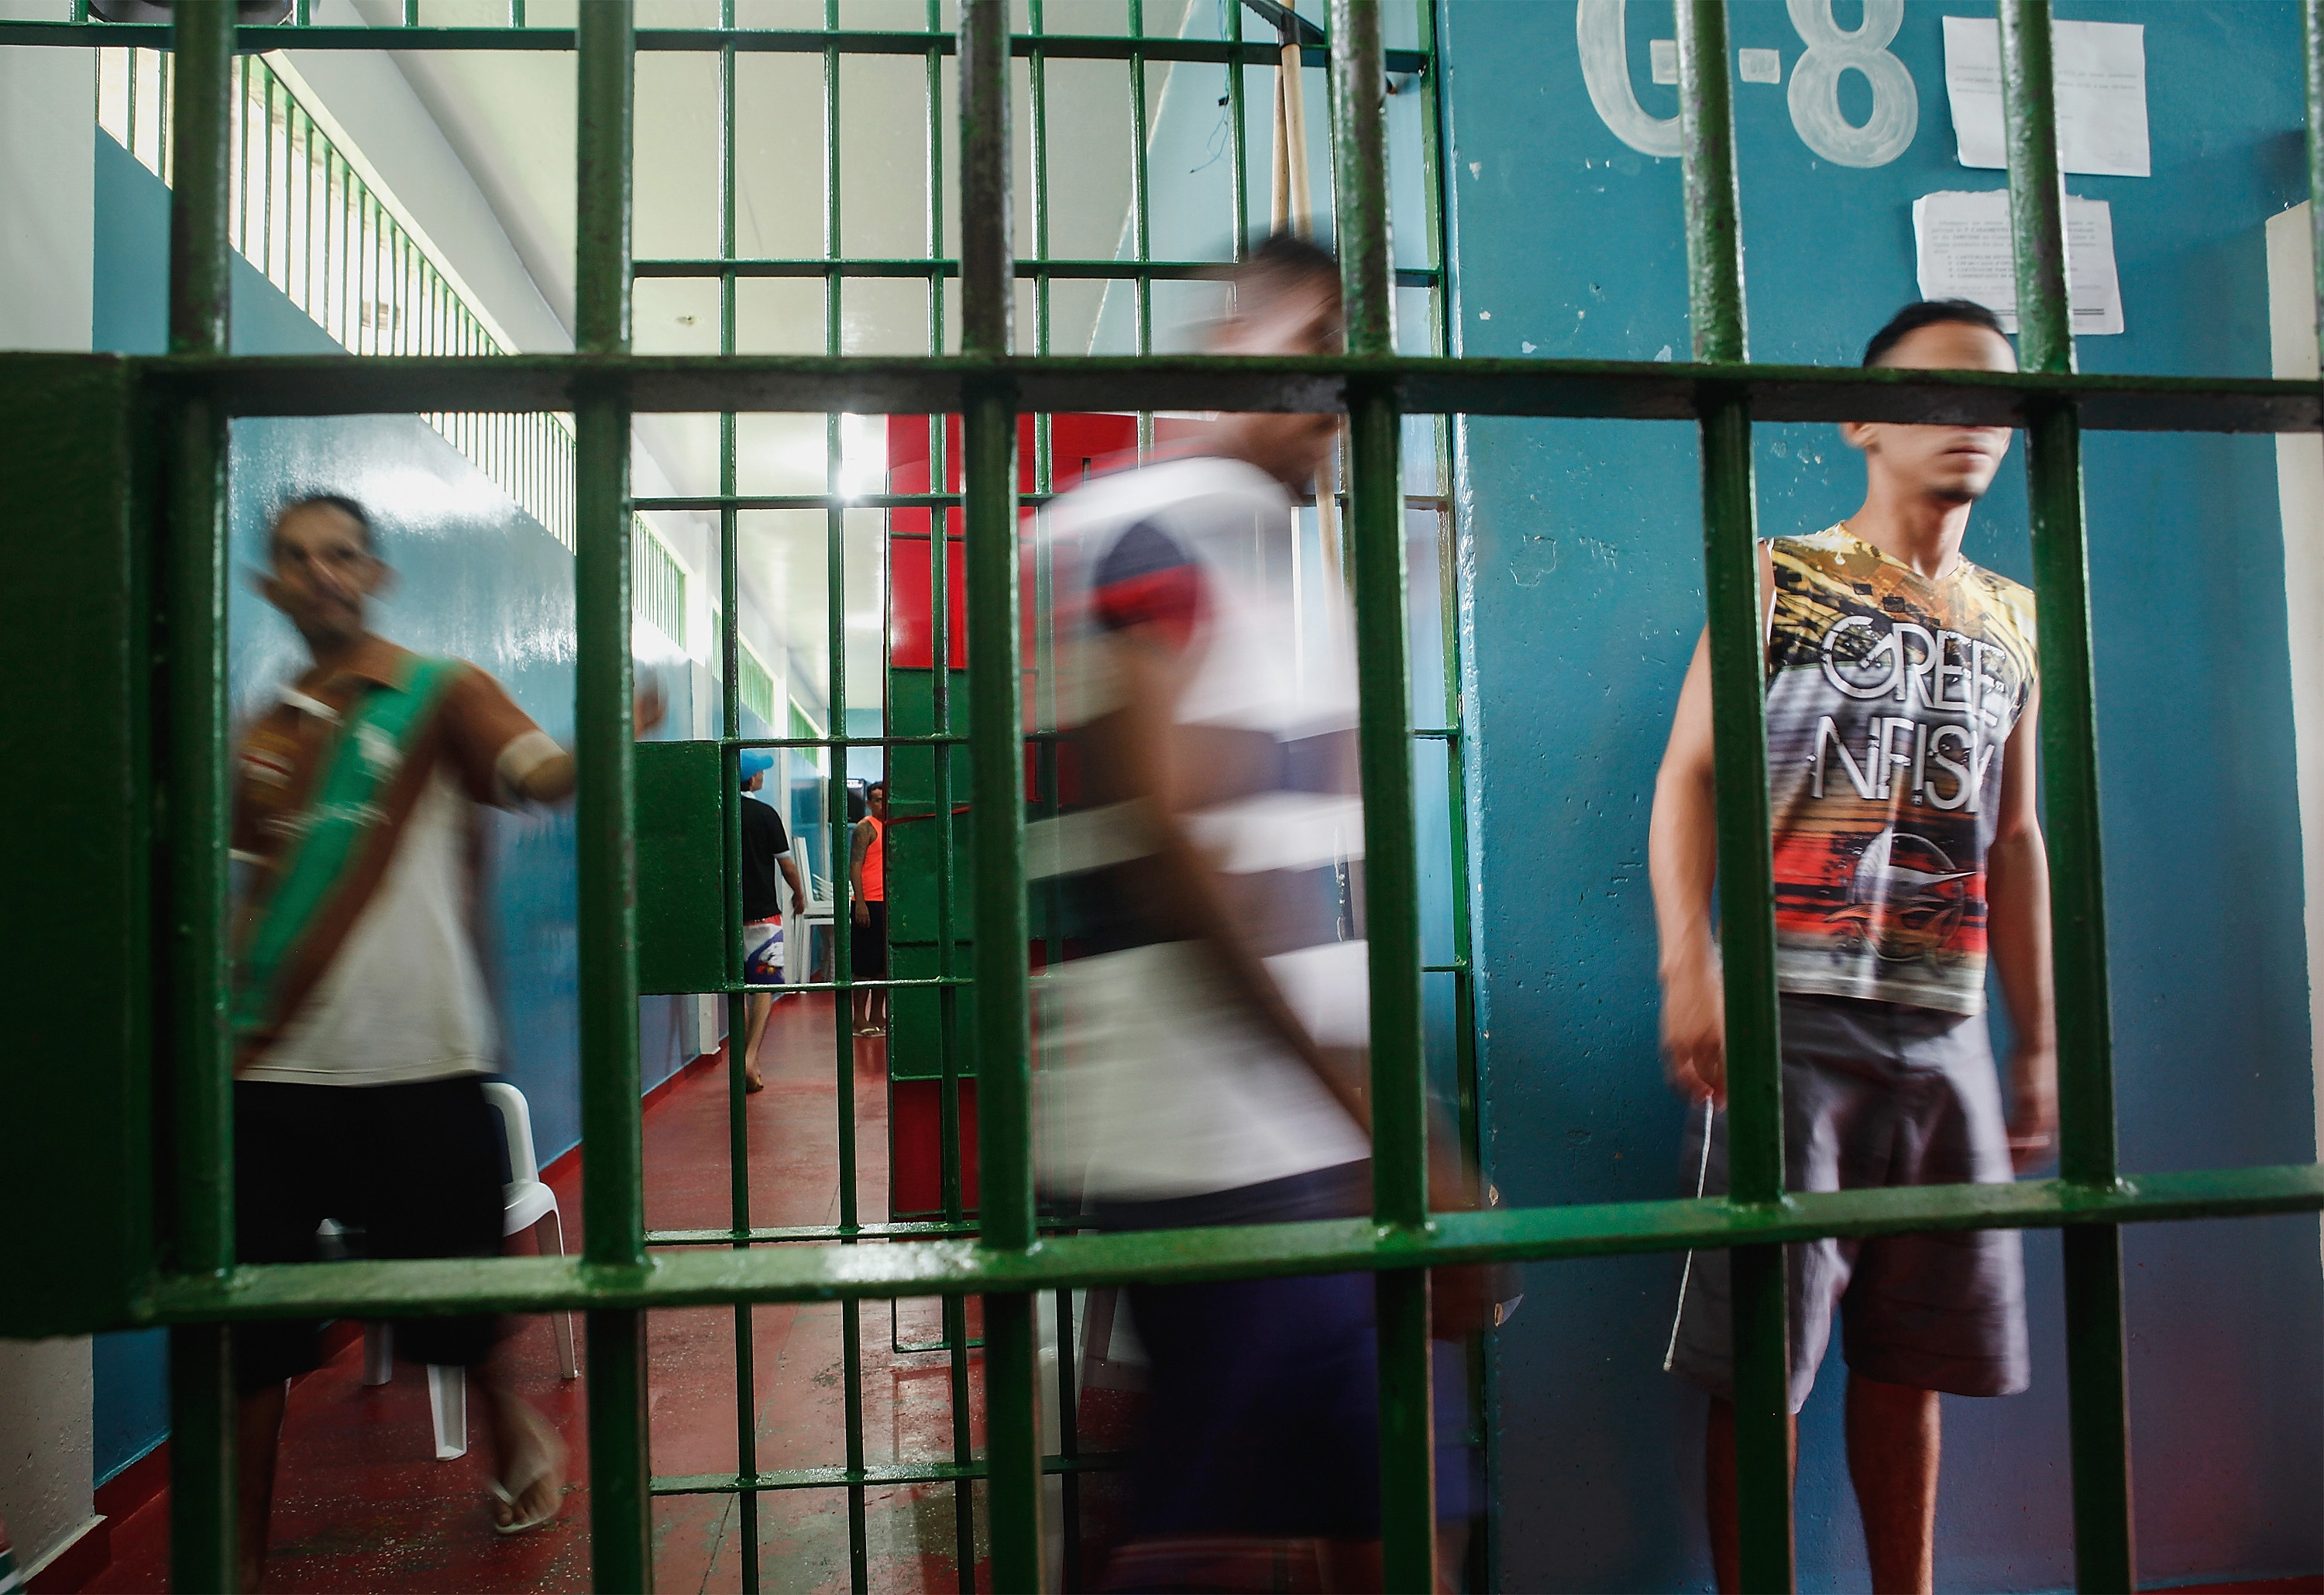 Inmates gather in the overcrowded Puraquequara prison on February 18, 2016 in Manaus, Brazil.